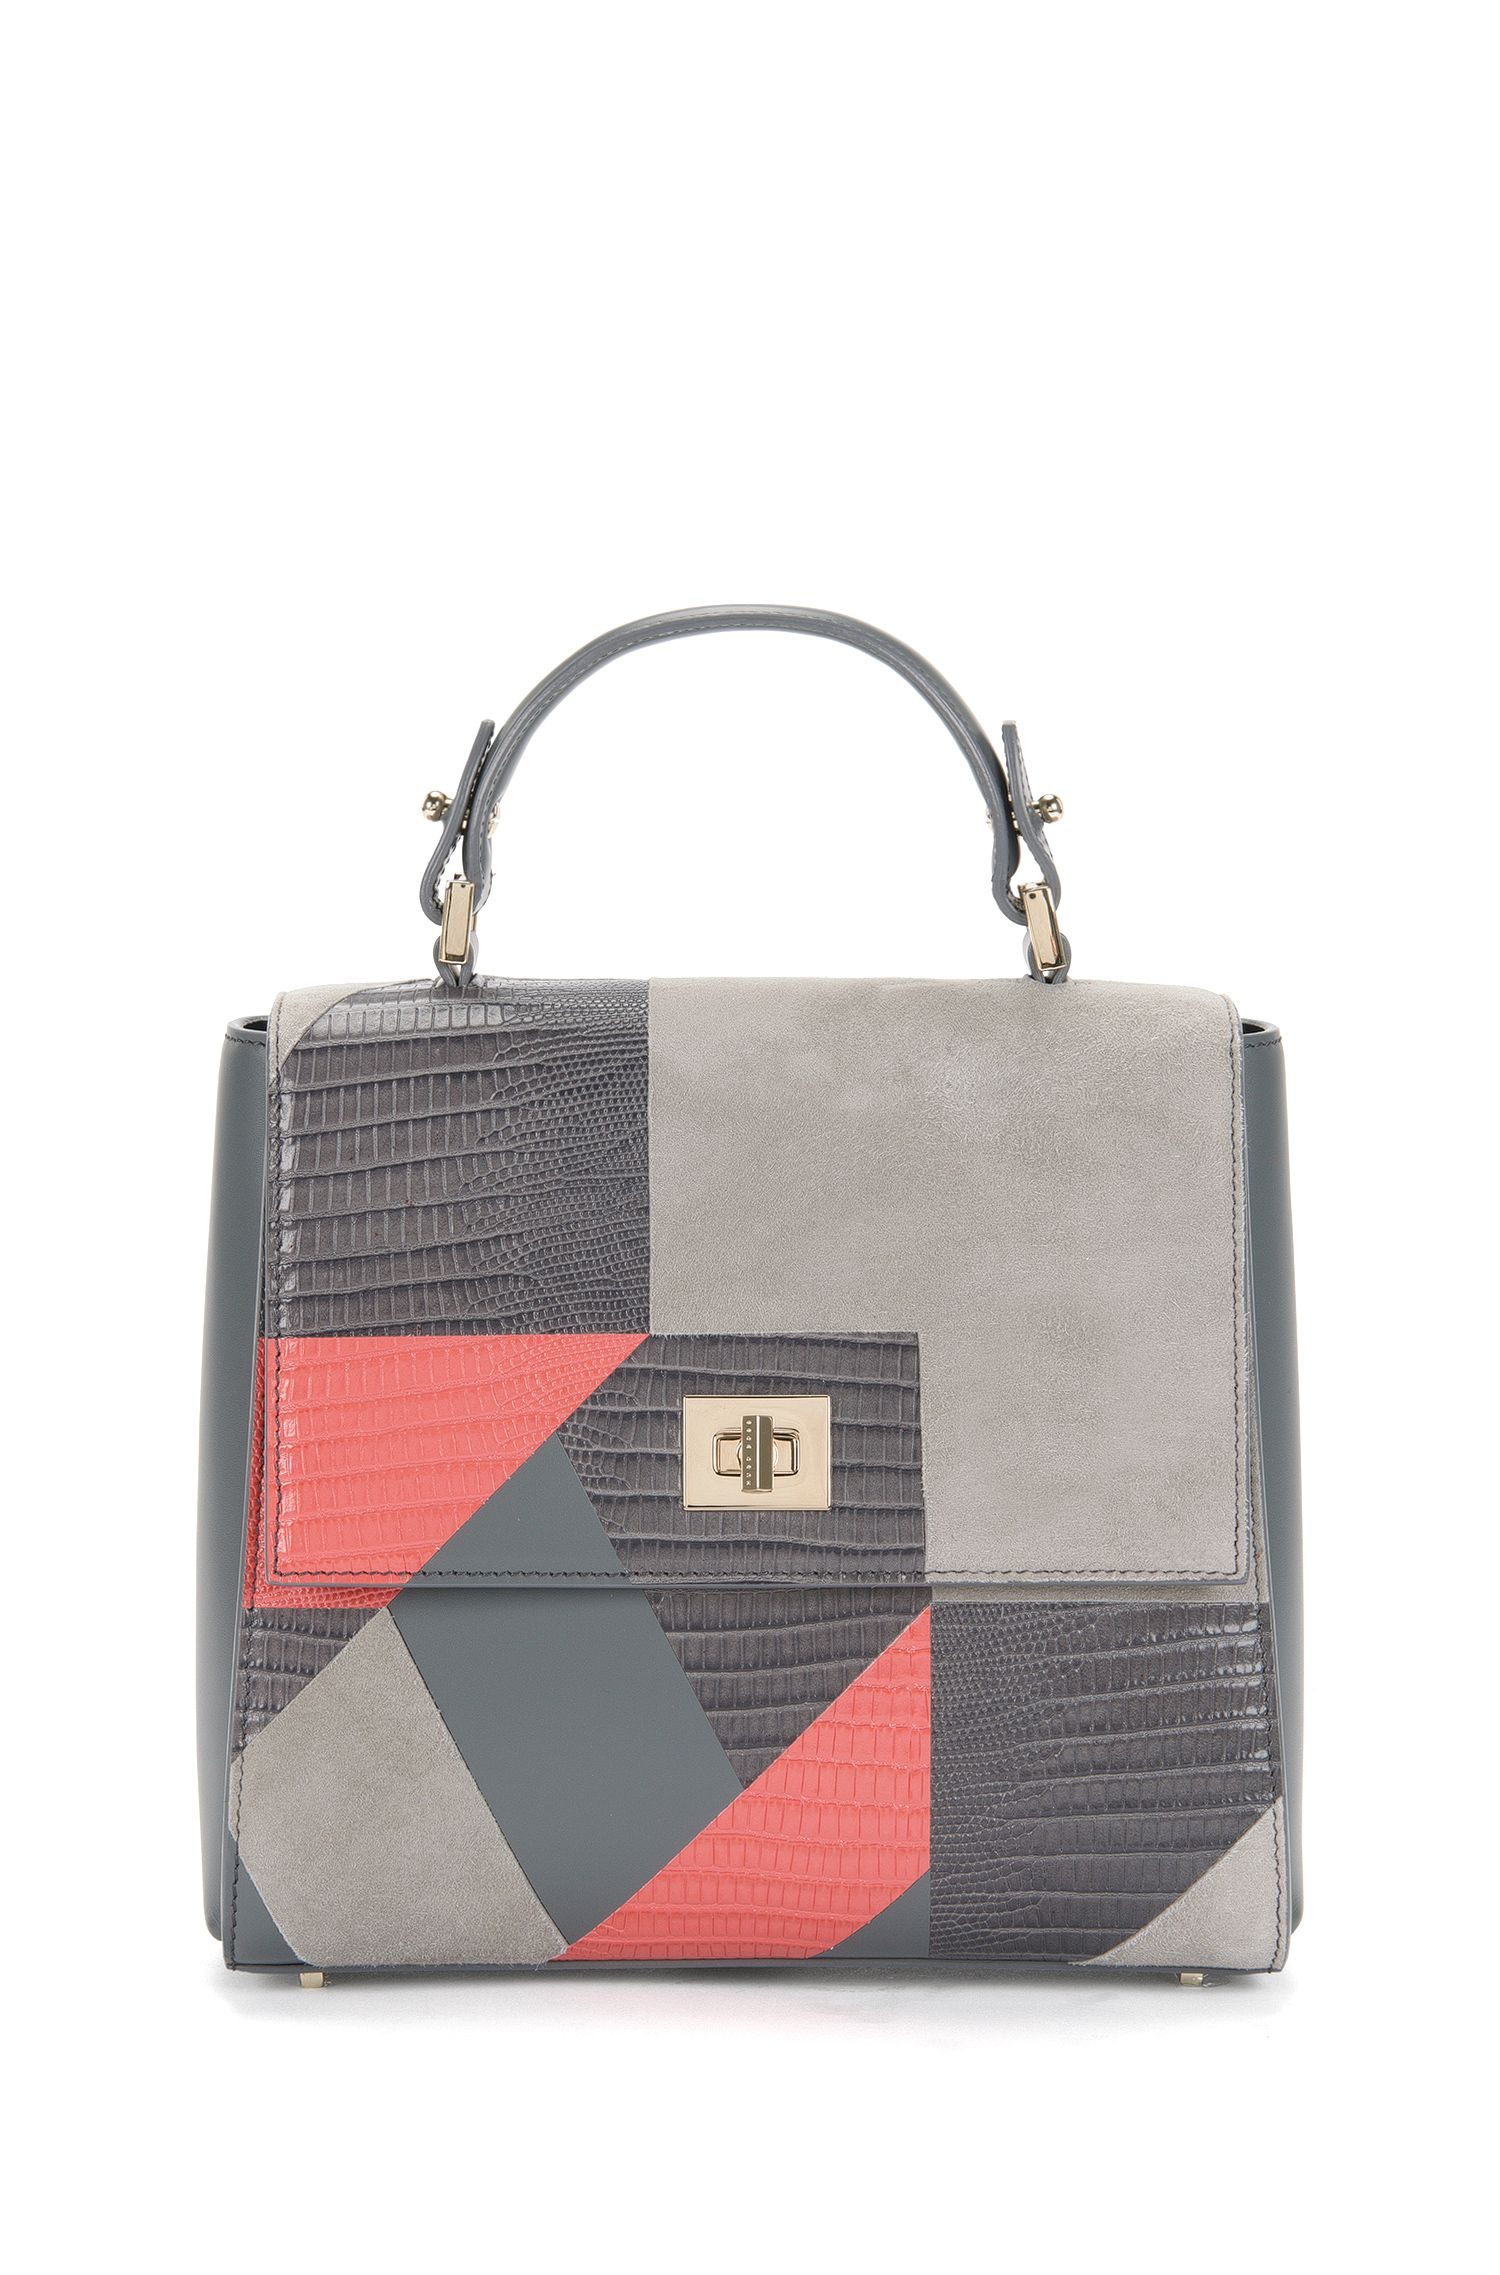 Small BOSS Bespoke leather handbag in a mixture of textures